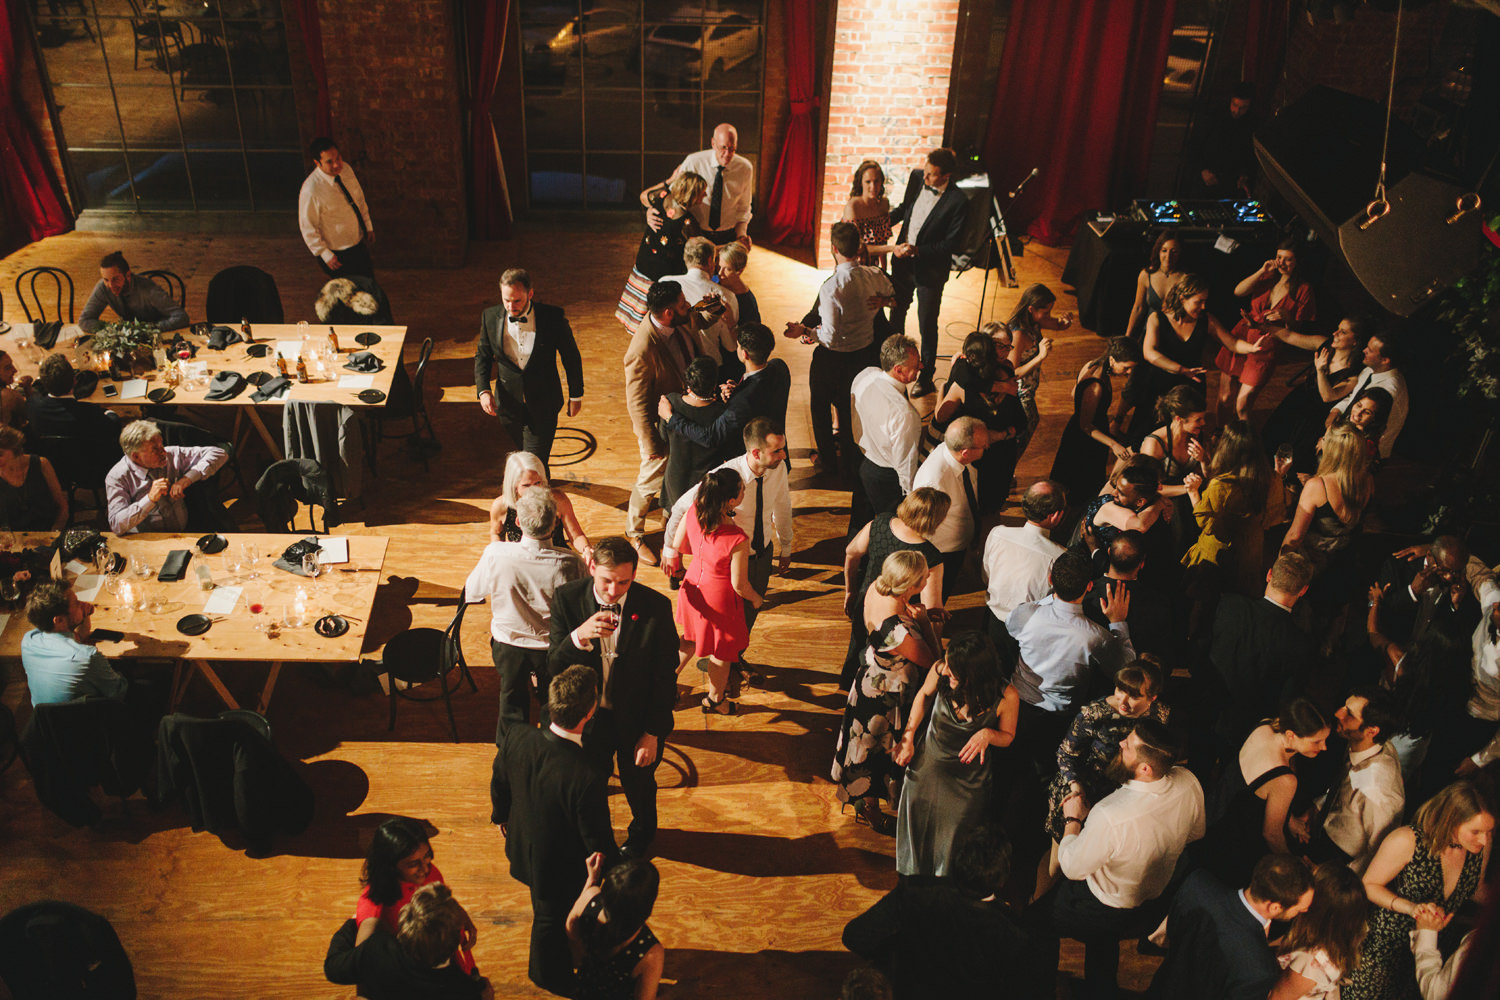 Warehouse_Wedding_Melbourne_Navin_Elly112.JPG